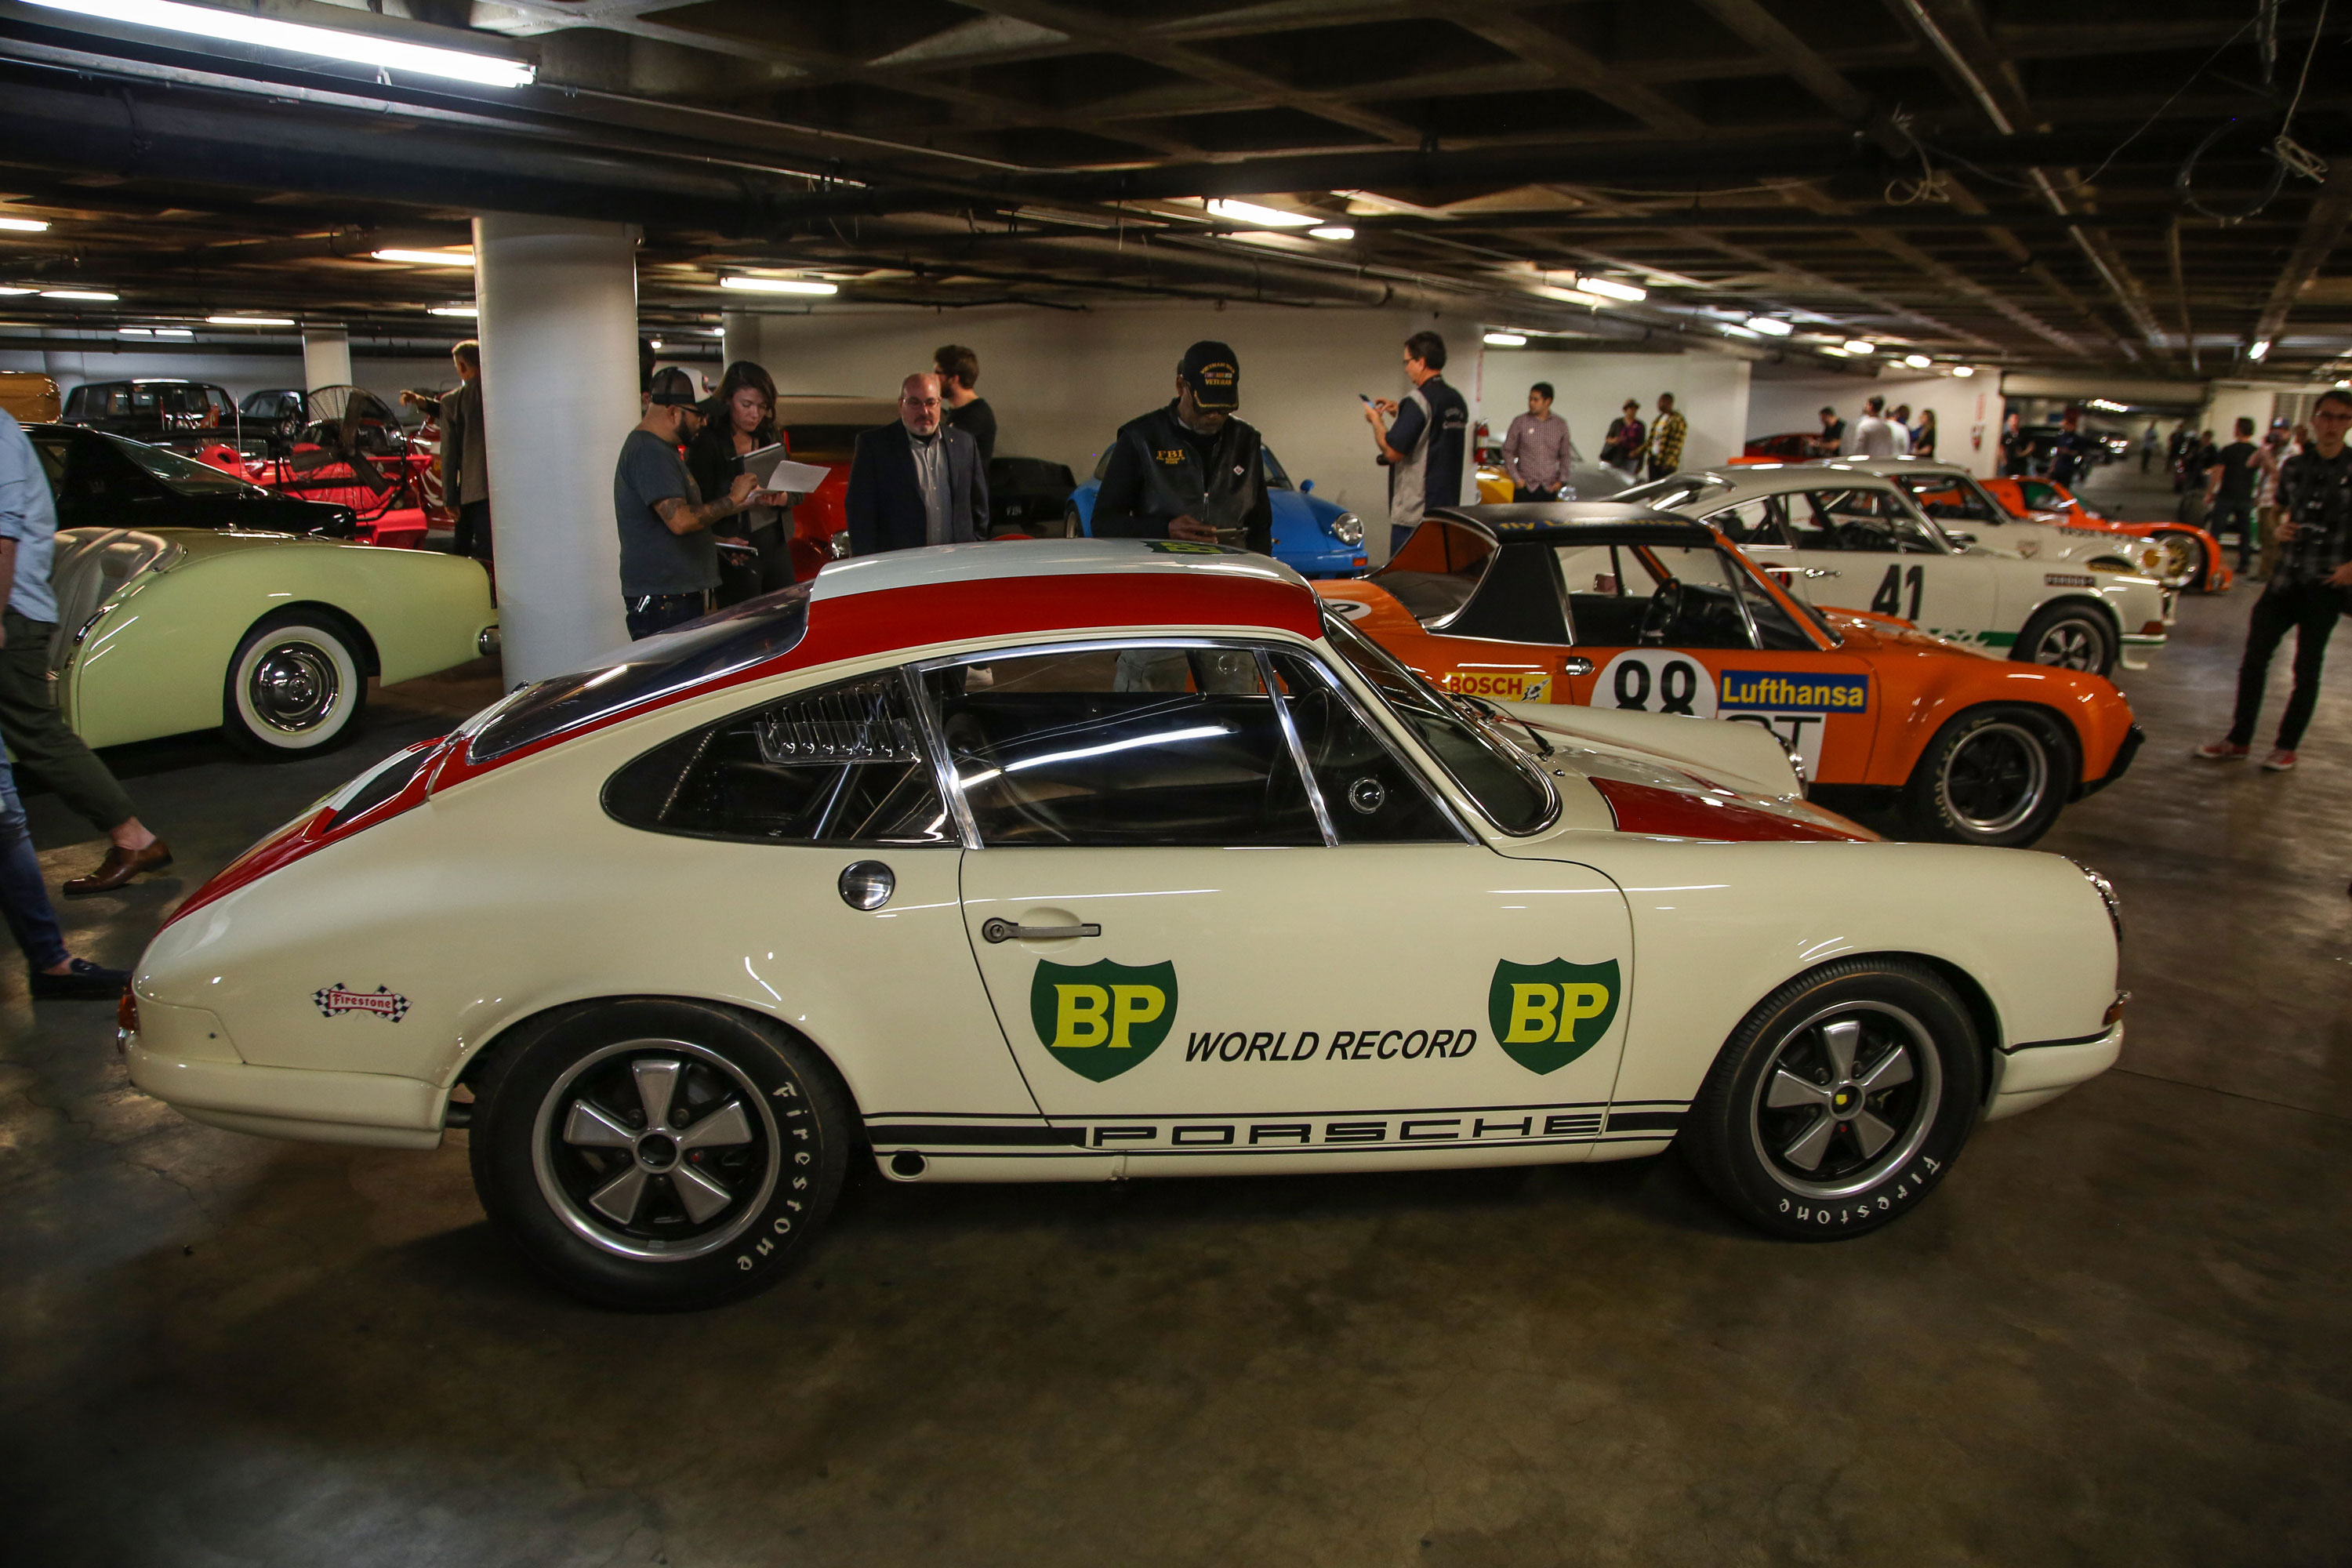 The Petersen's vault is also available to tour and holds more than a dozen additional, noteworthy Porsches, including this 911R that set numerous endurance records at Monza.